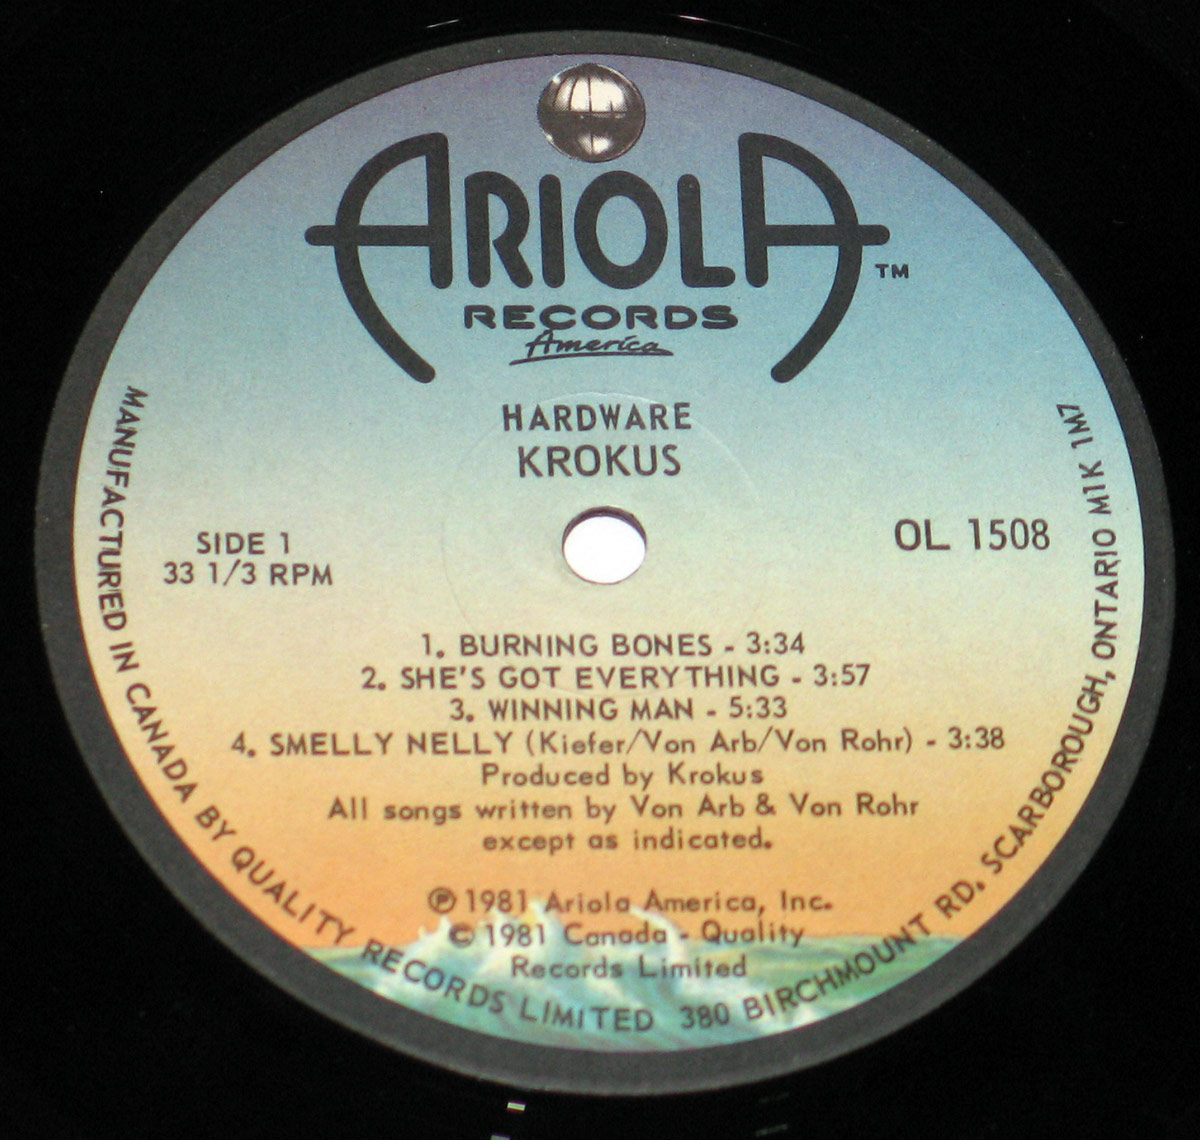 Close up of the KROKUS - Hardware Ariola Canada record's label